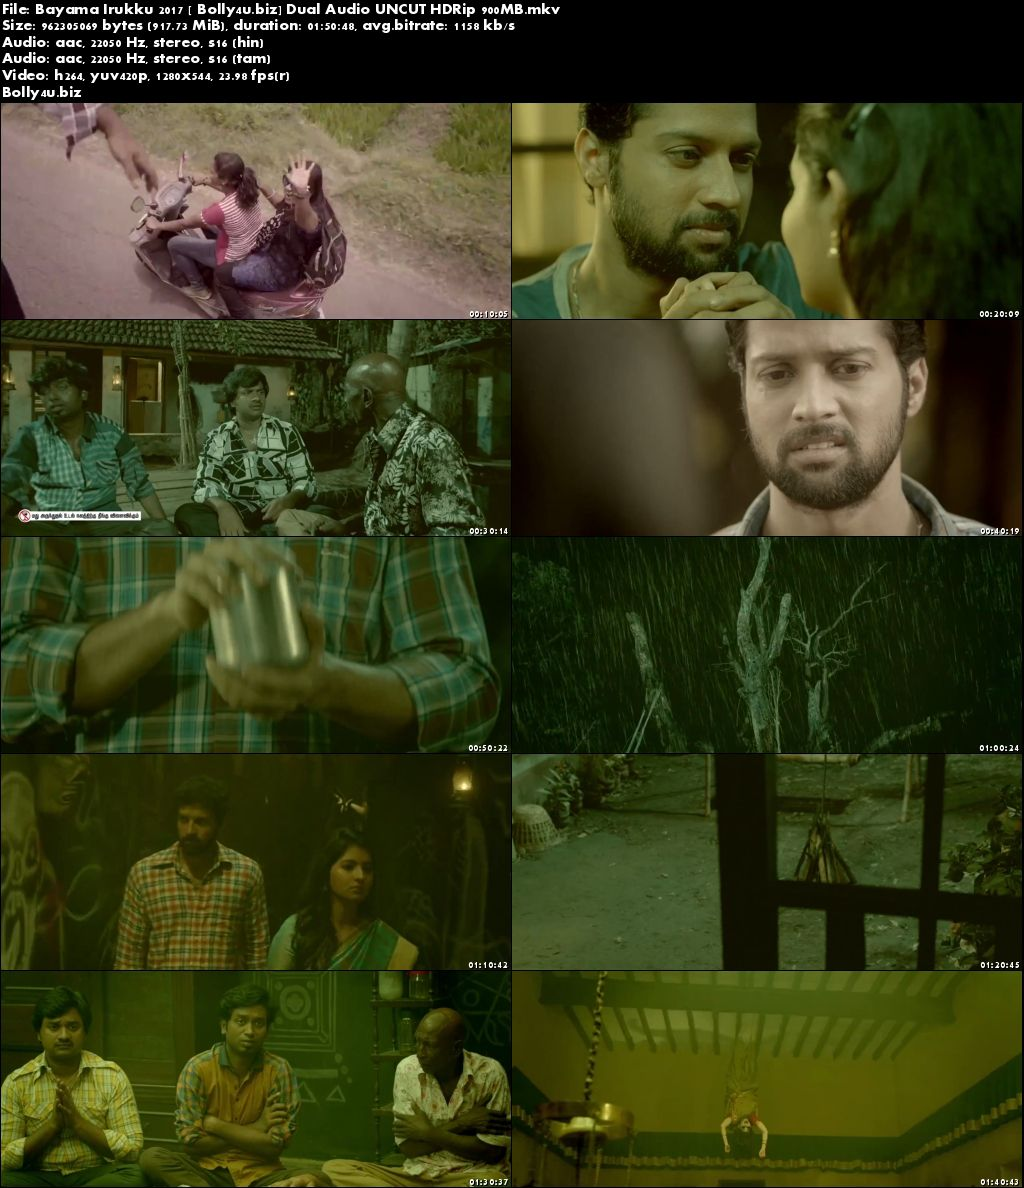 Bayama Irukku 2017 HDRip 900MB UNCUT Hindi Dual Audio 720p Download